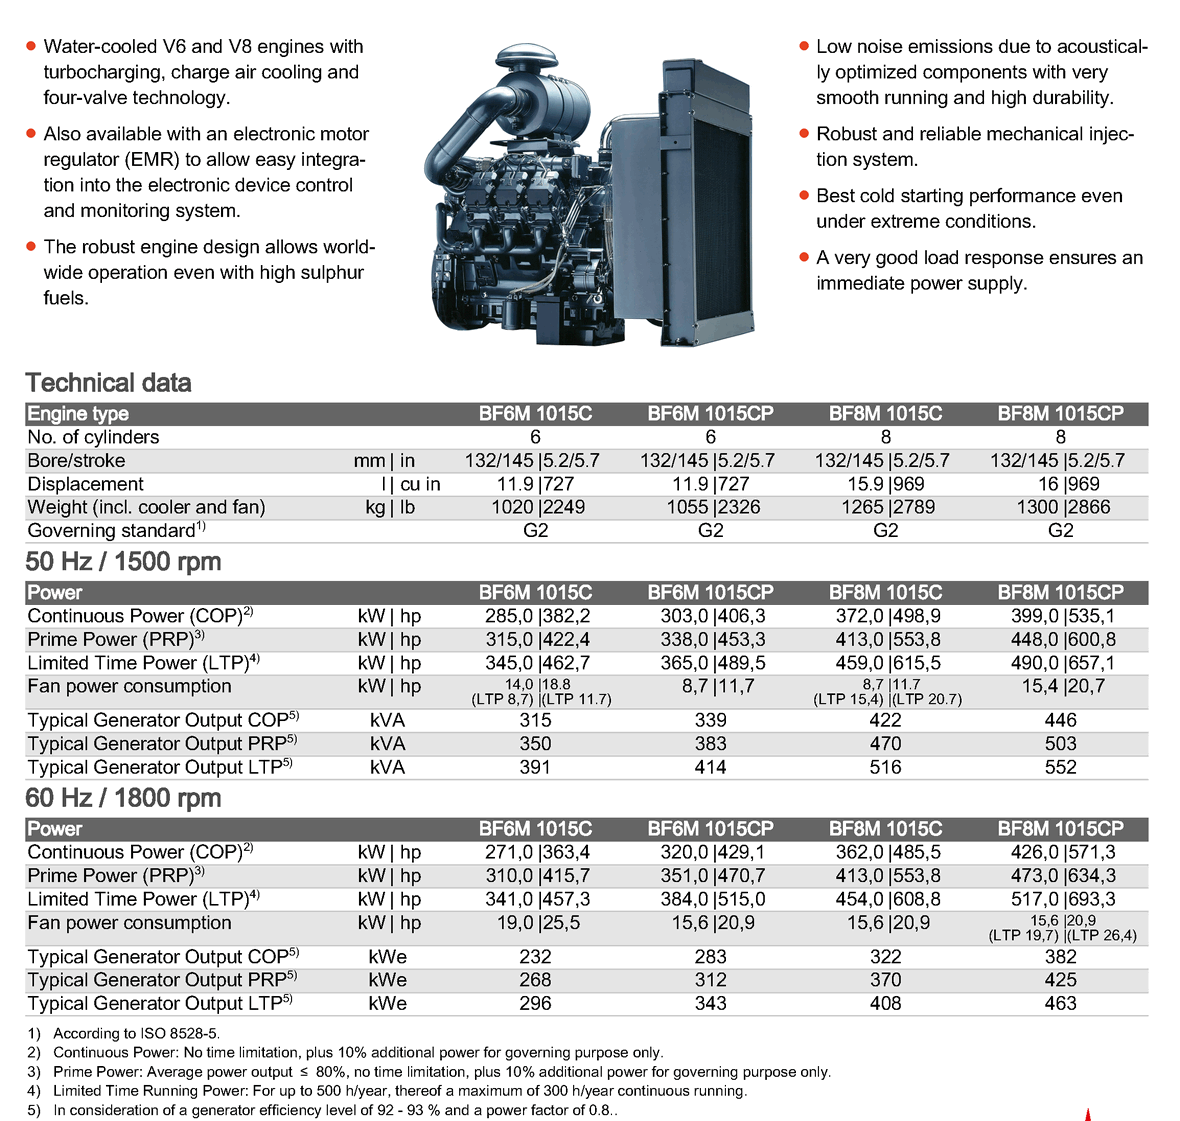 spec_engineBFM_1015_Genset_EN_250-517kw_1.png